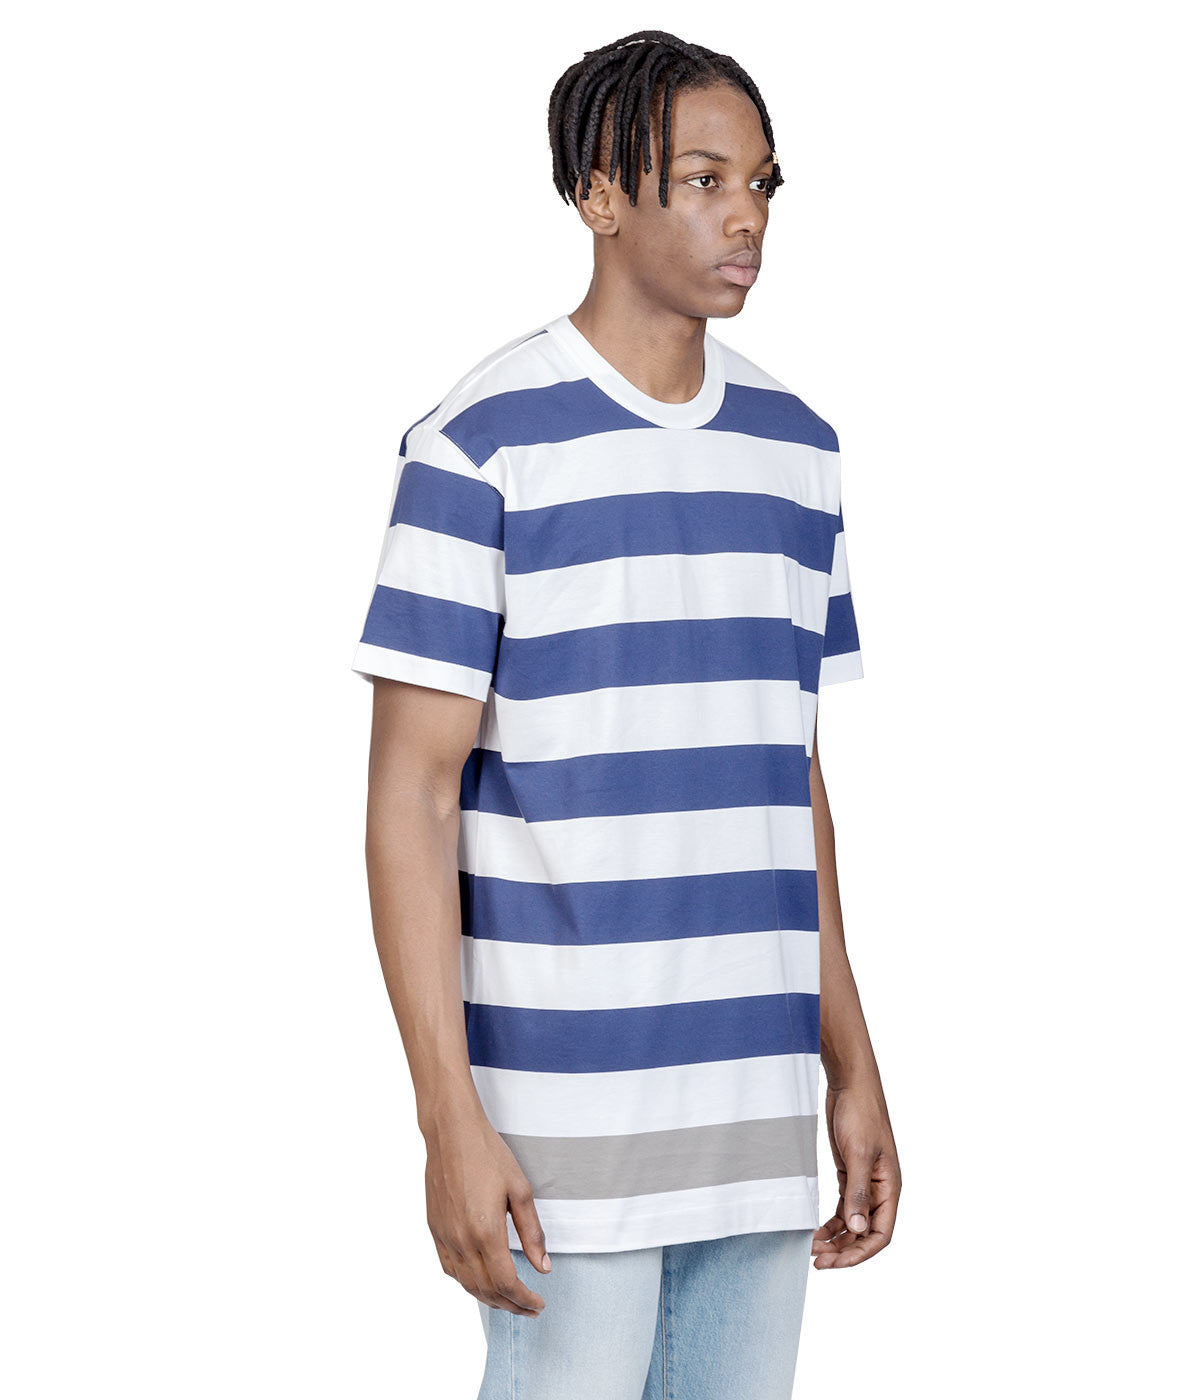 White Striped mastermind feat. A-GIRL'S T-shirt